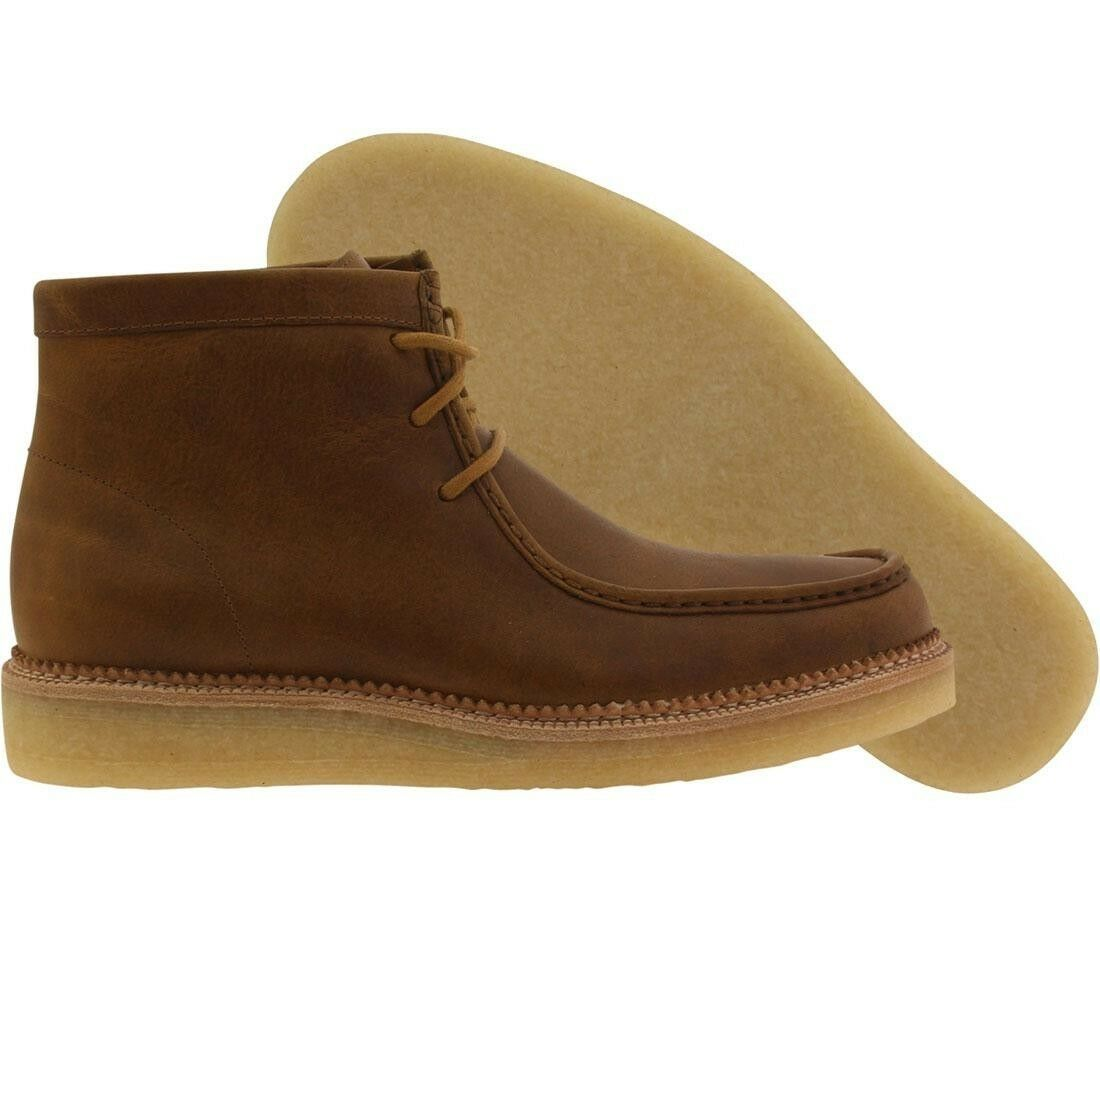 214.00 Clarks Uomo Beckery Hike bronze brown leather 26110048